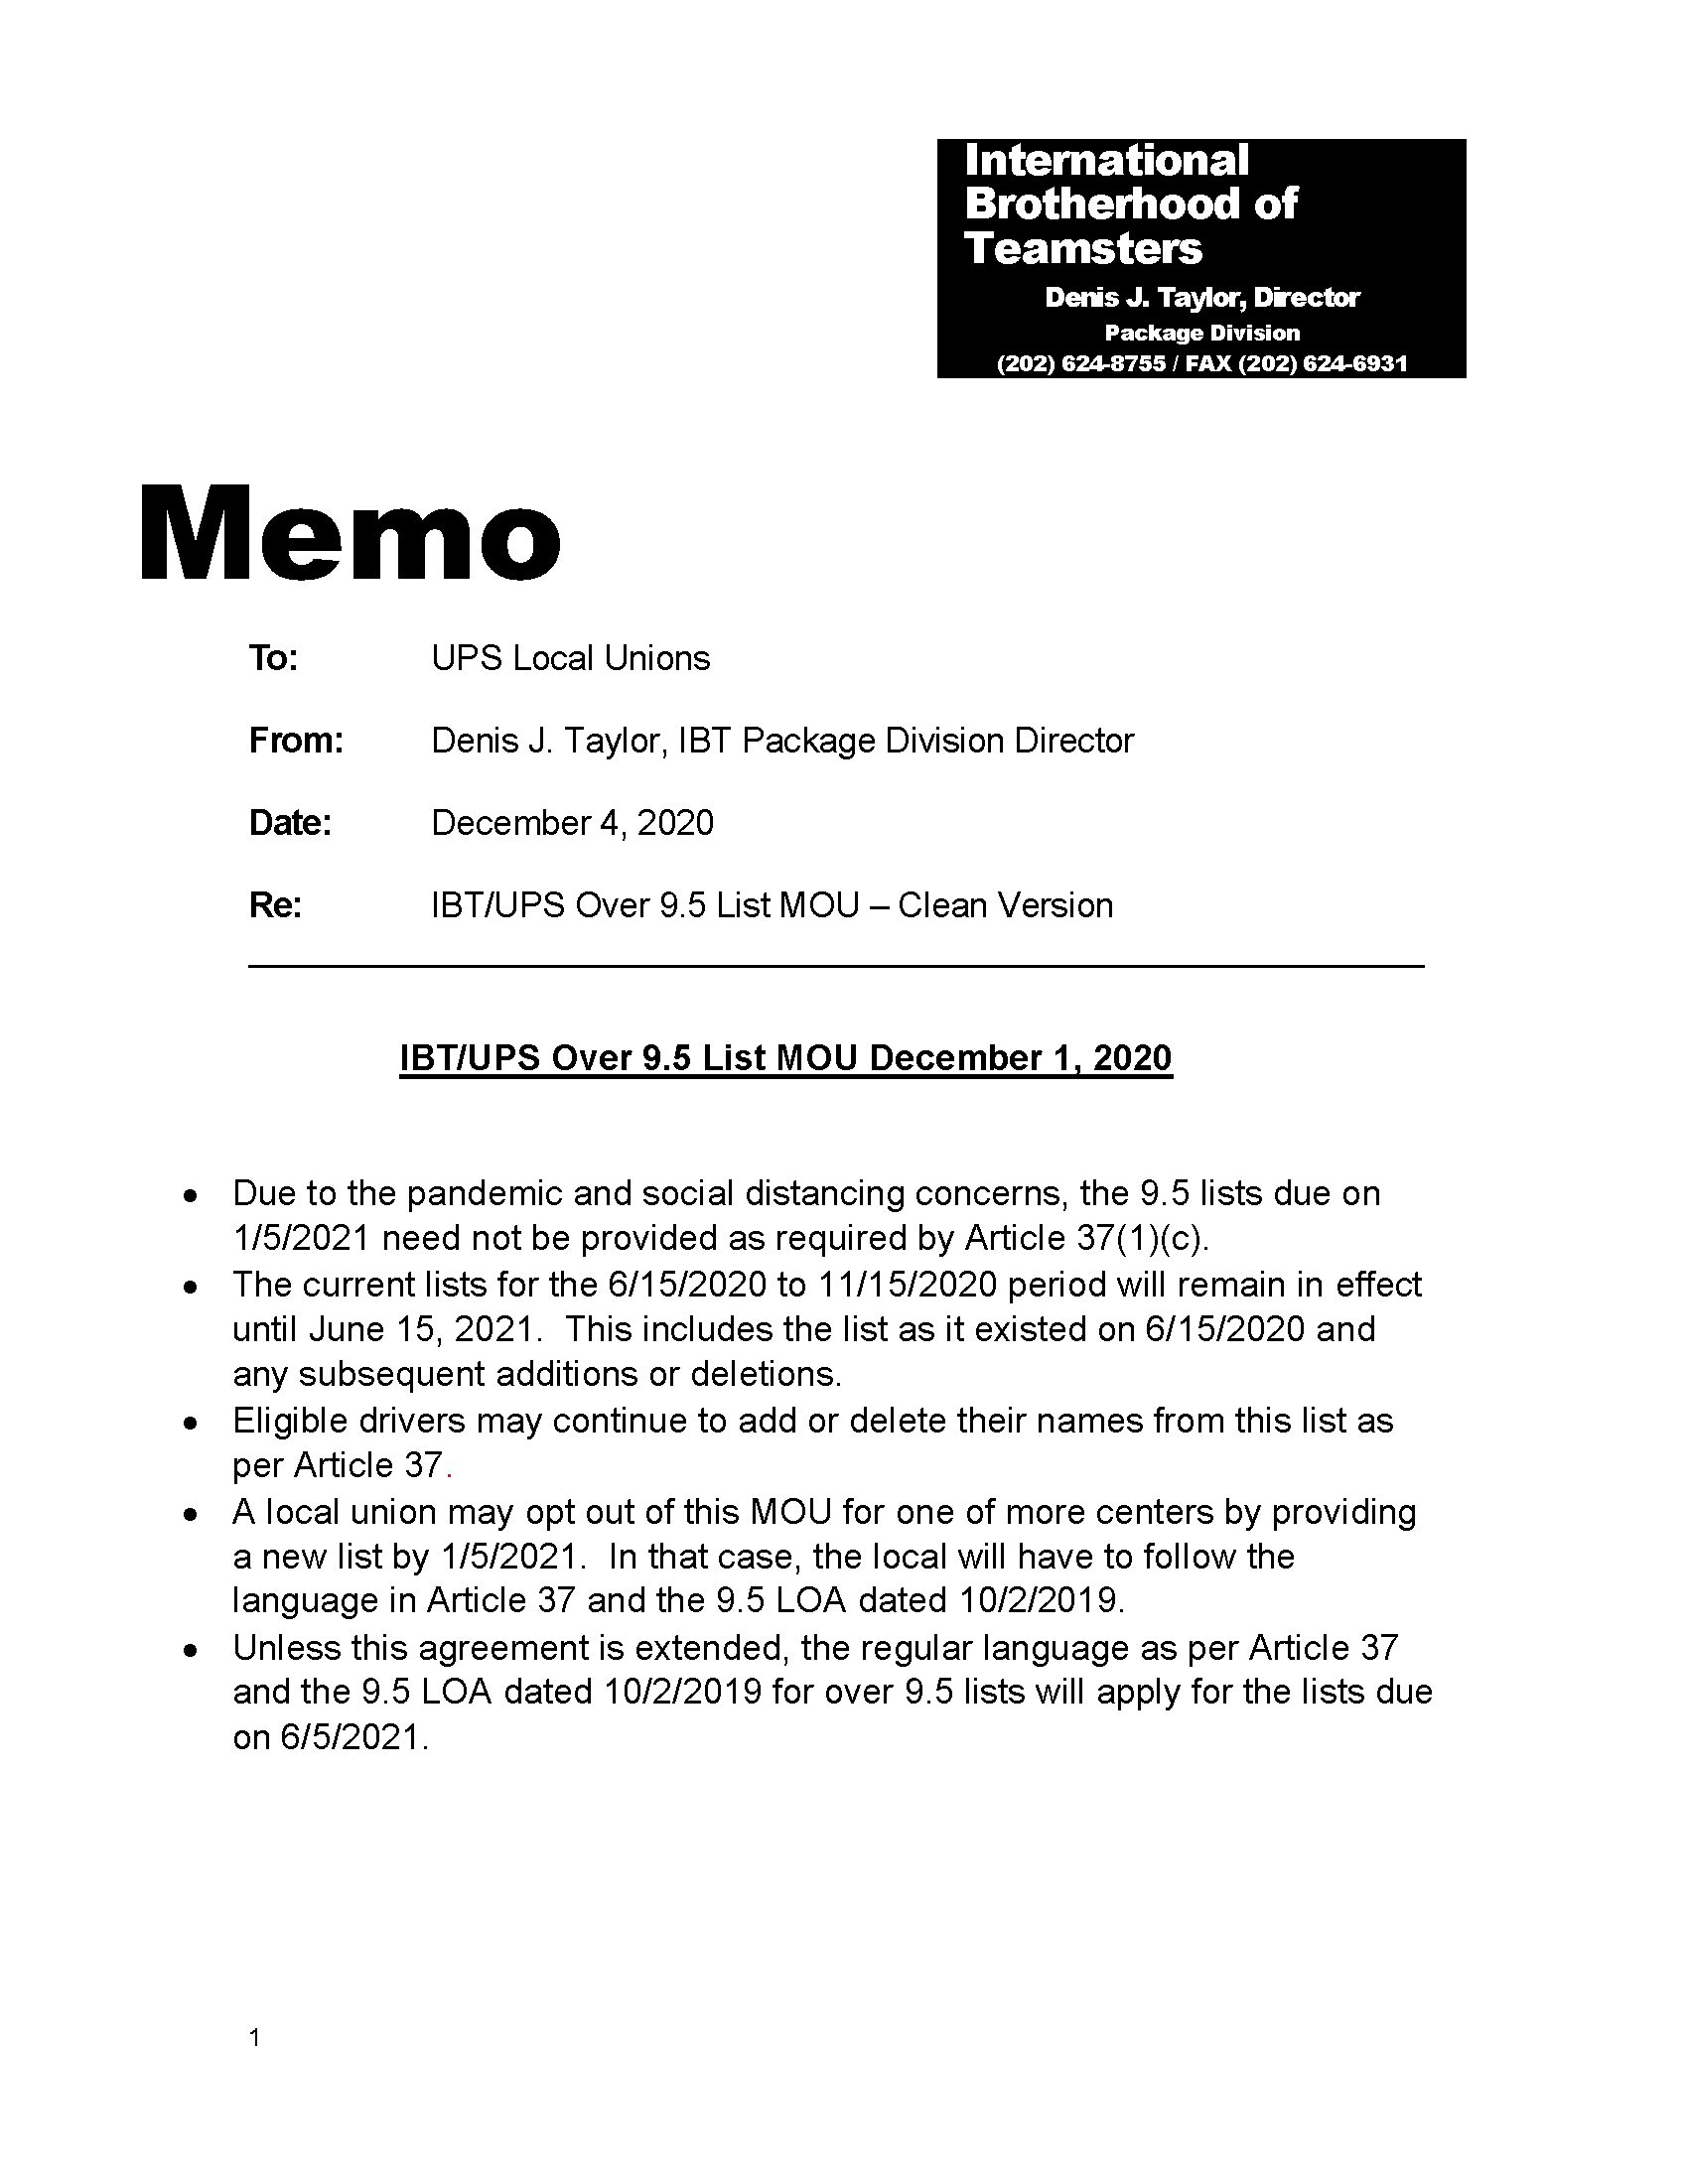 9.5Memo-MOU12-4-2020-CleanVersion.png